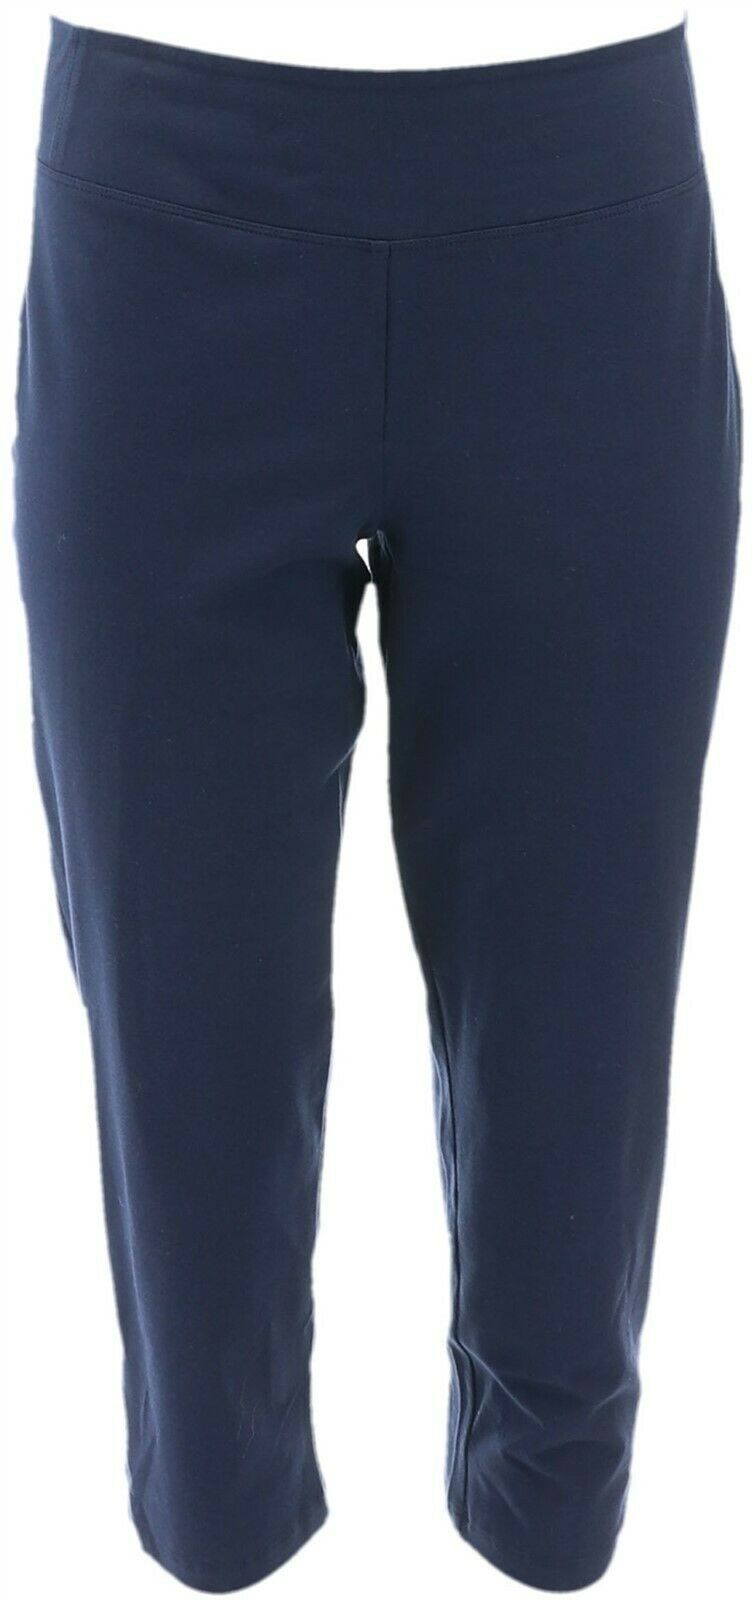 Primary image for Women with Control Petite Control Crop Pants Navy P2X NEW A350646